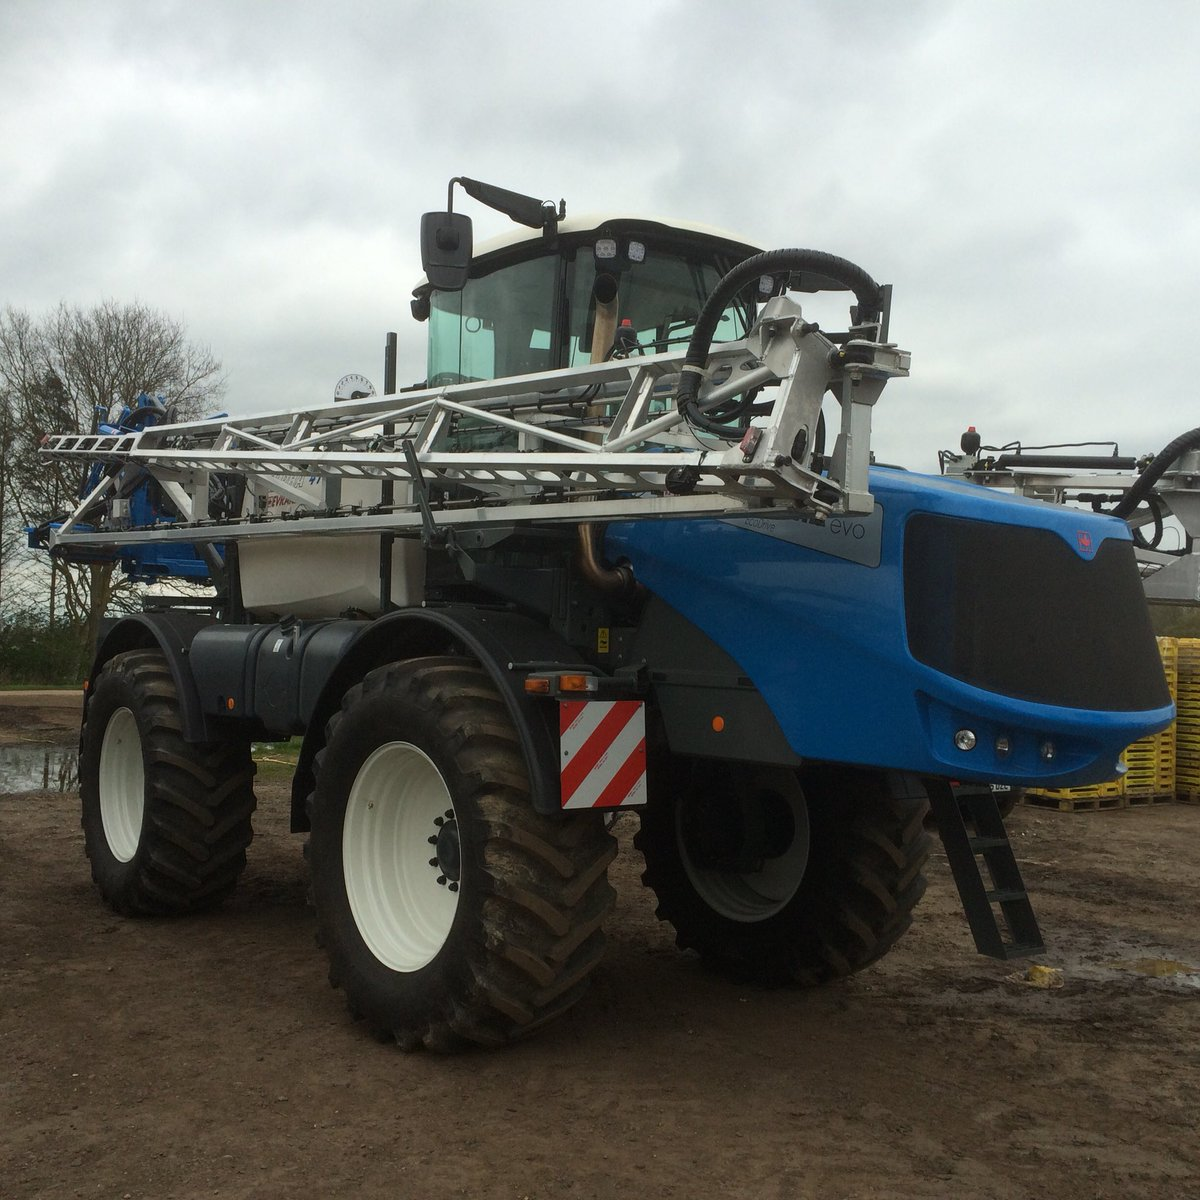 test Twitter Media - New @hardisprayers alpha eco delivered today in Evrard colours #twooffour https://t.co/1vOVrynDc3